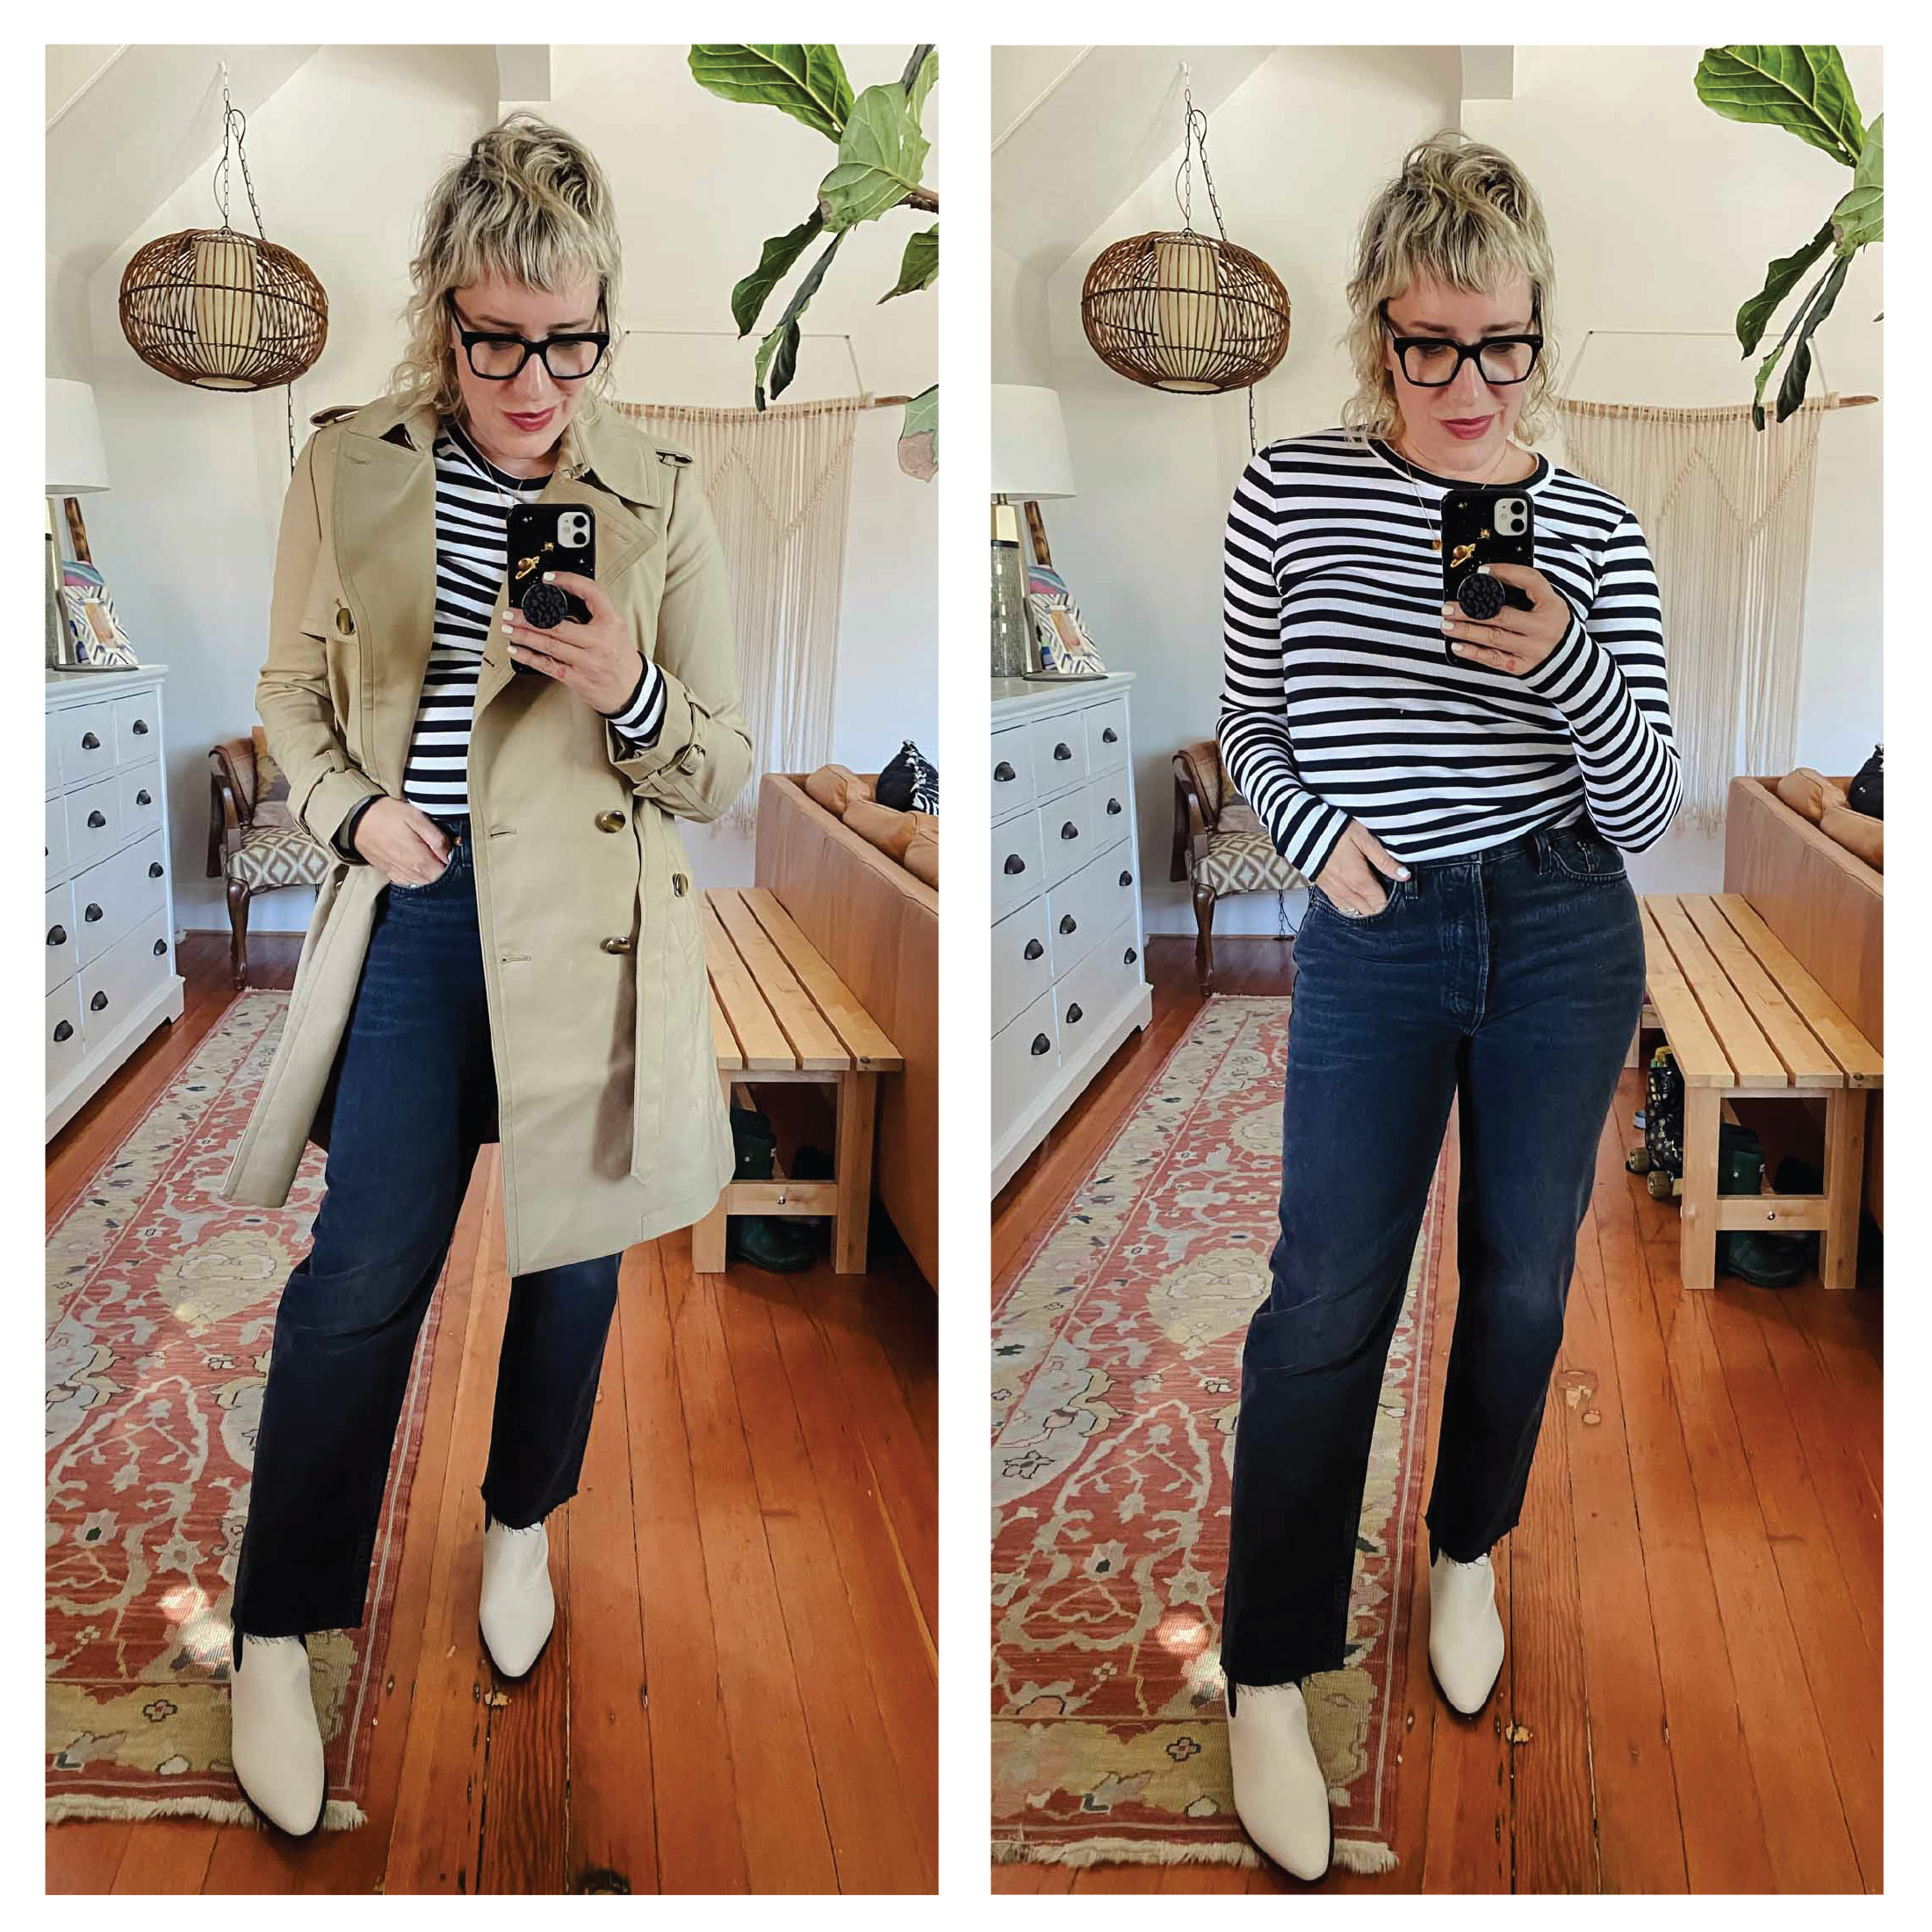 First honorable mention item is the cute under $20 Nordstrom brand ribbed LS striped tee I have on. It's super-soft, great for layering and again, totally me.